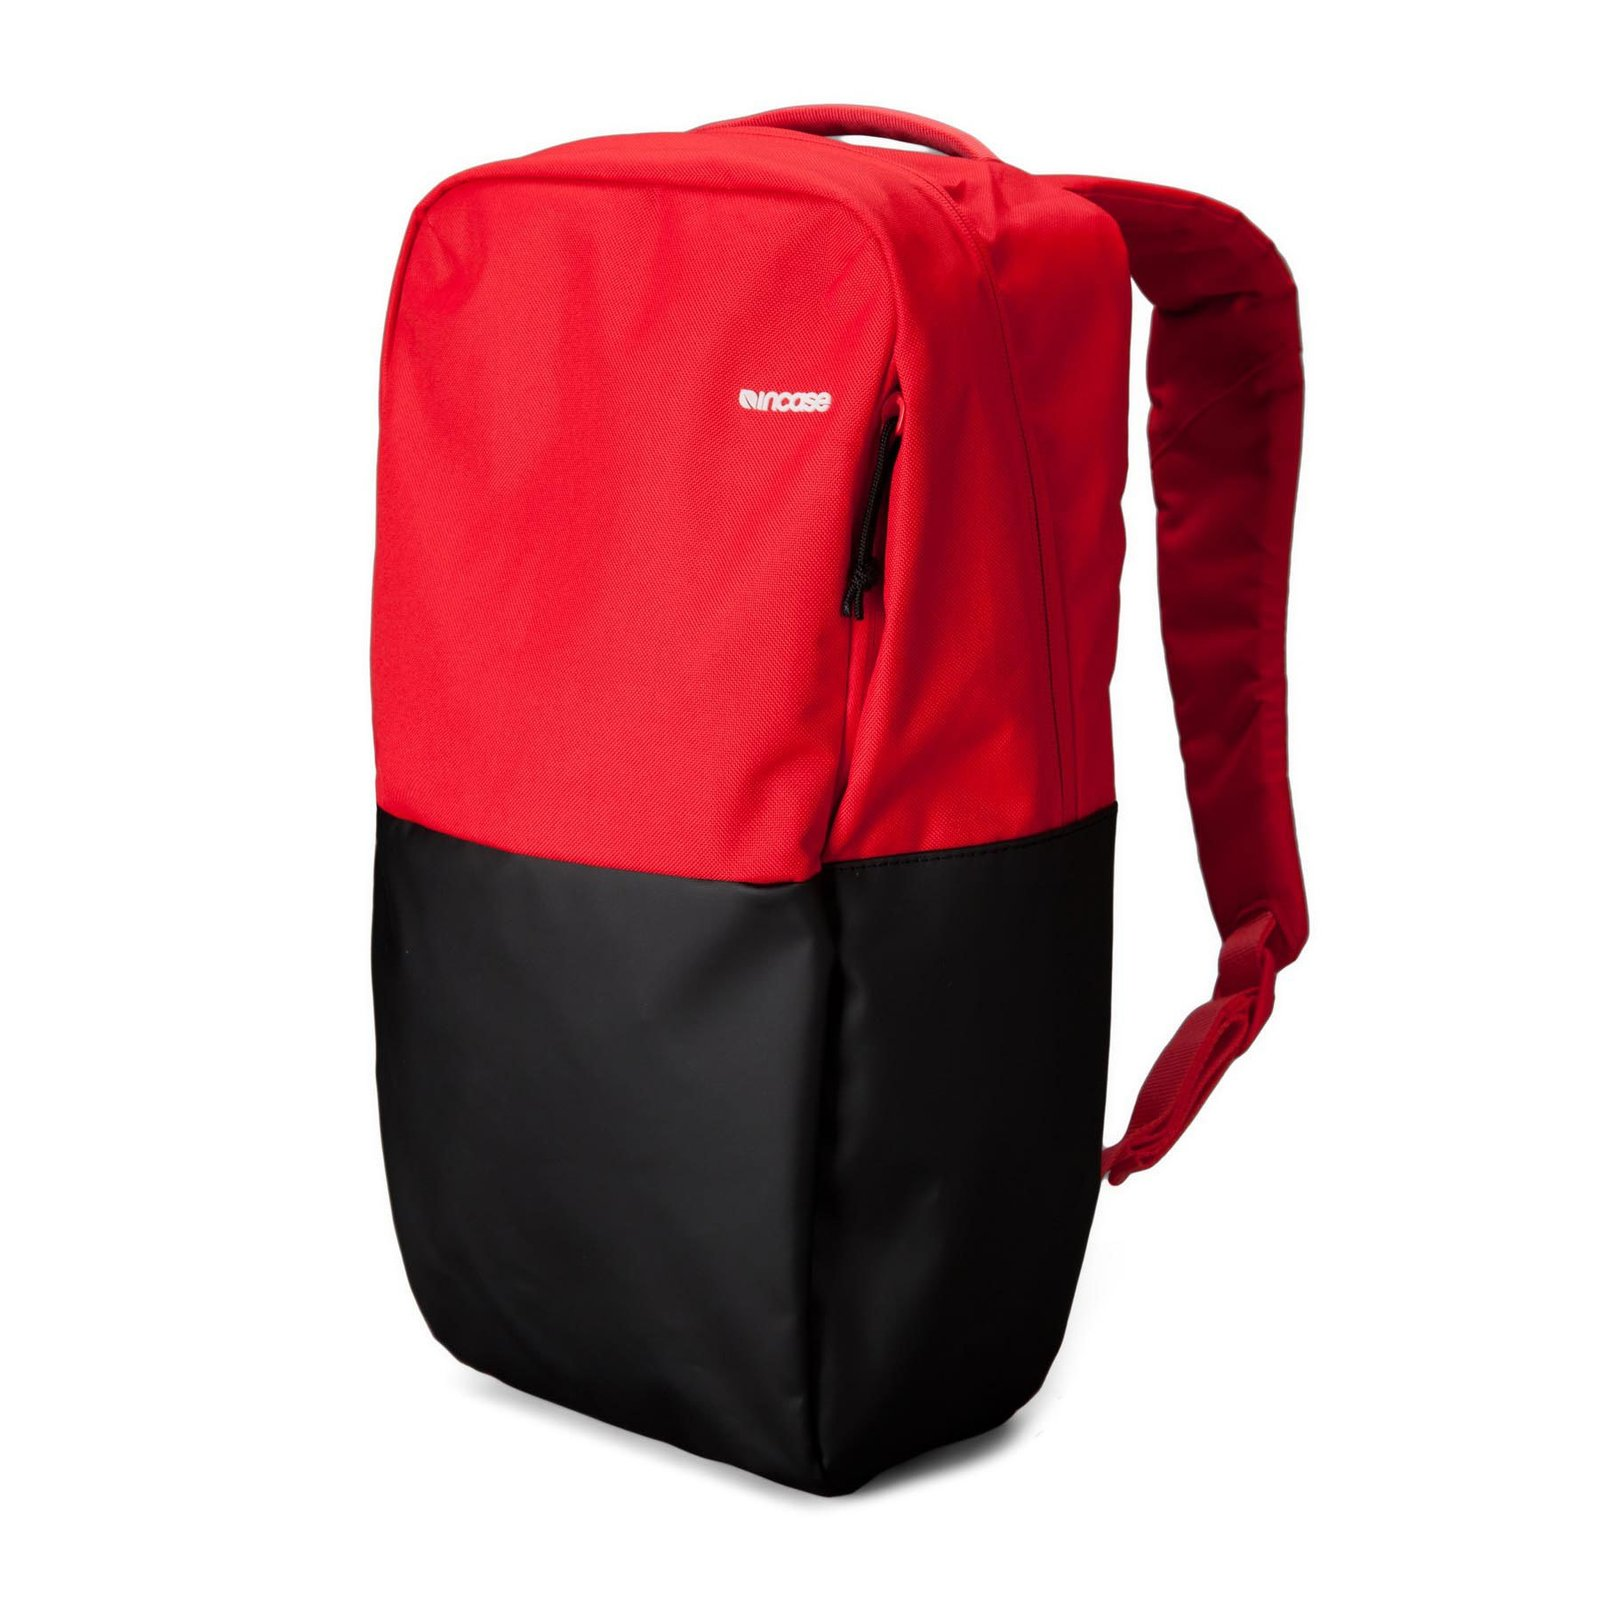 Incase Staple Backpack Red Black, Red/Black, One Size